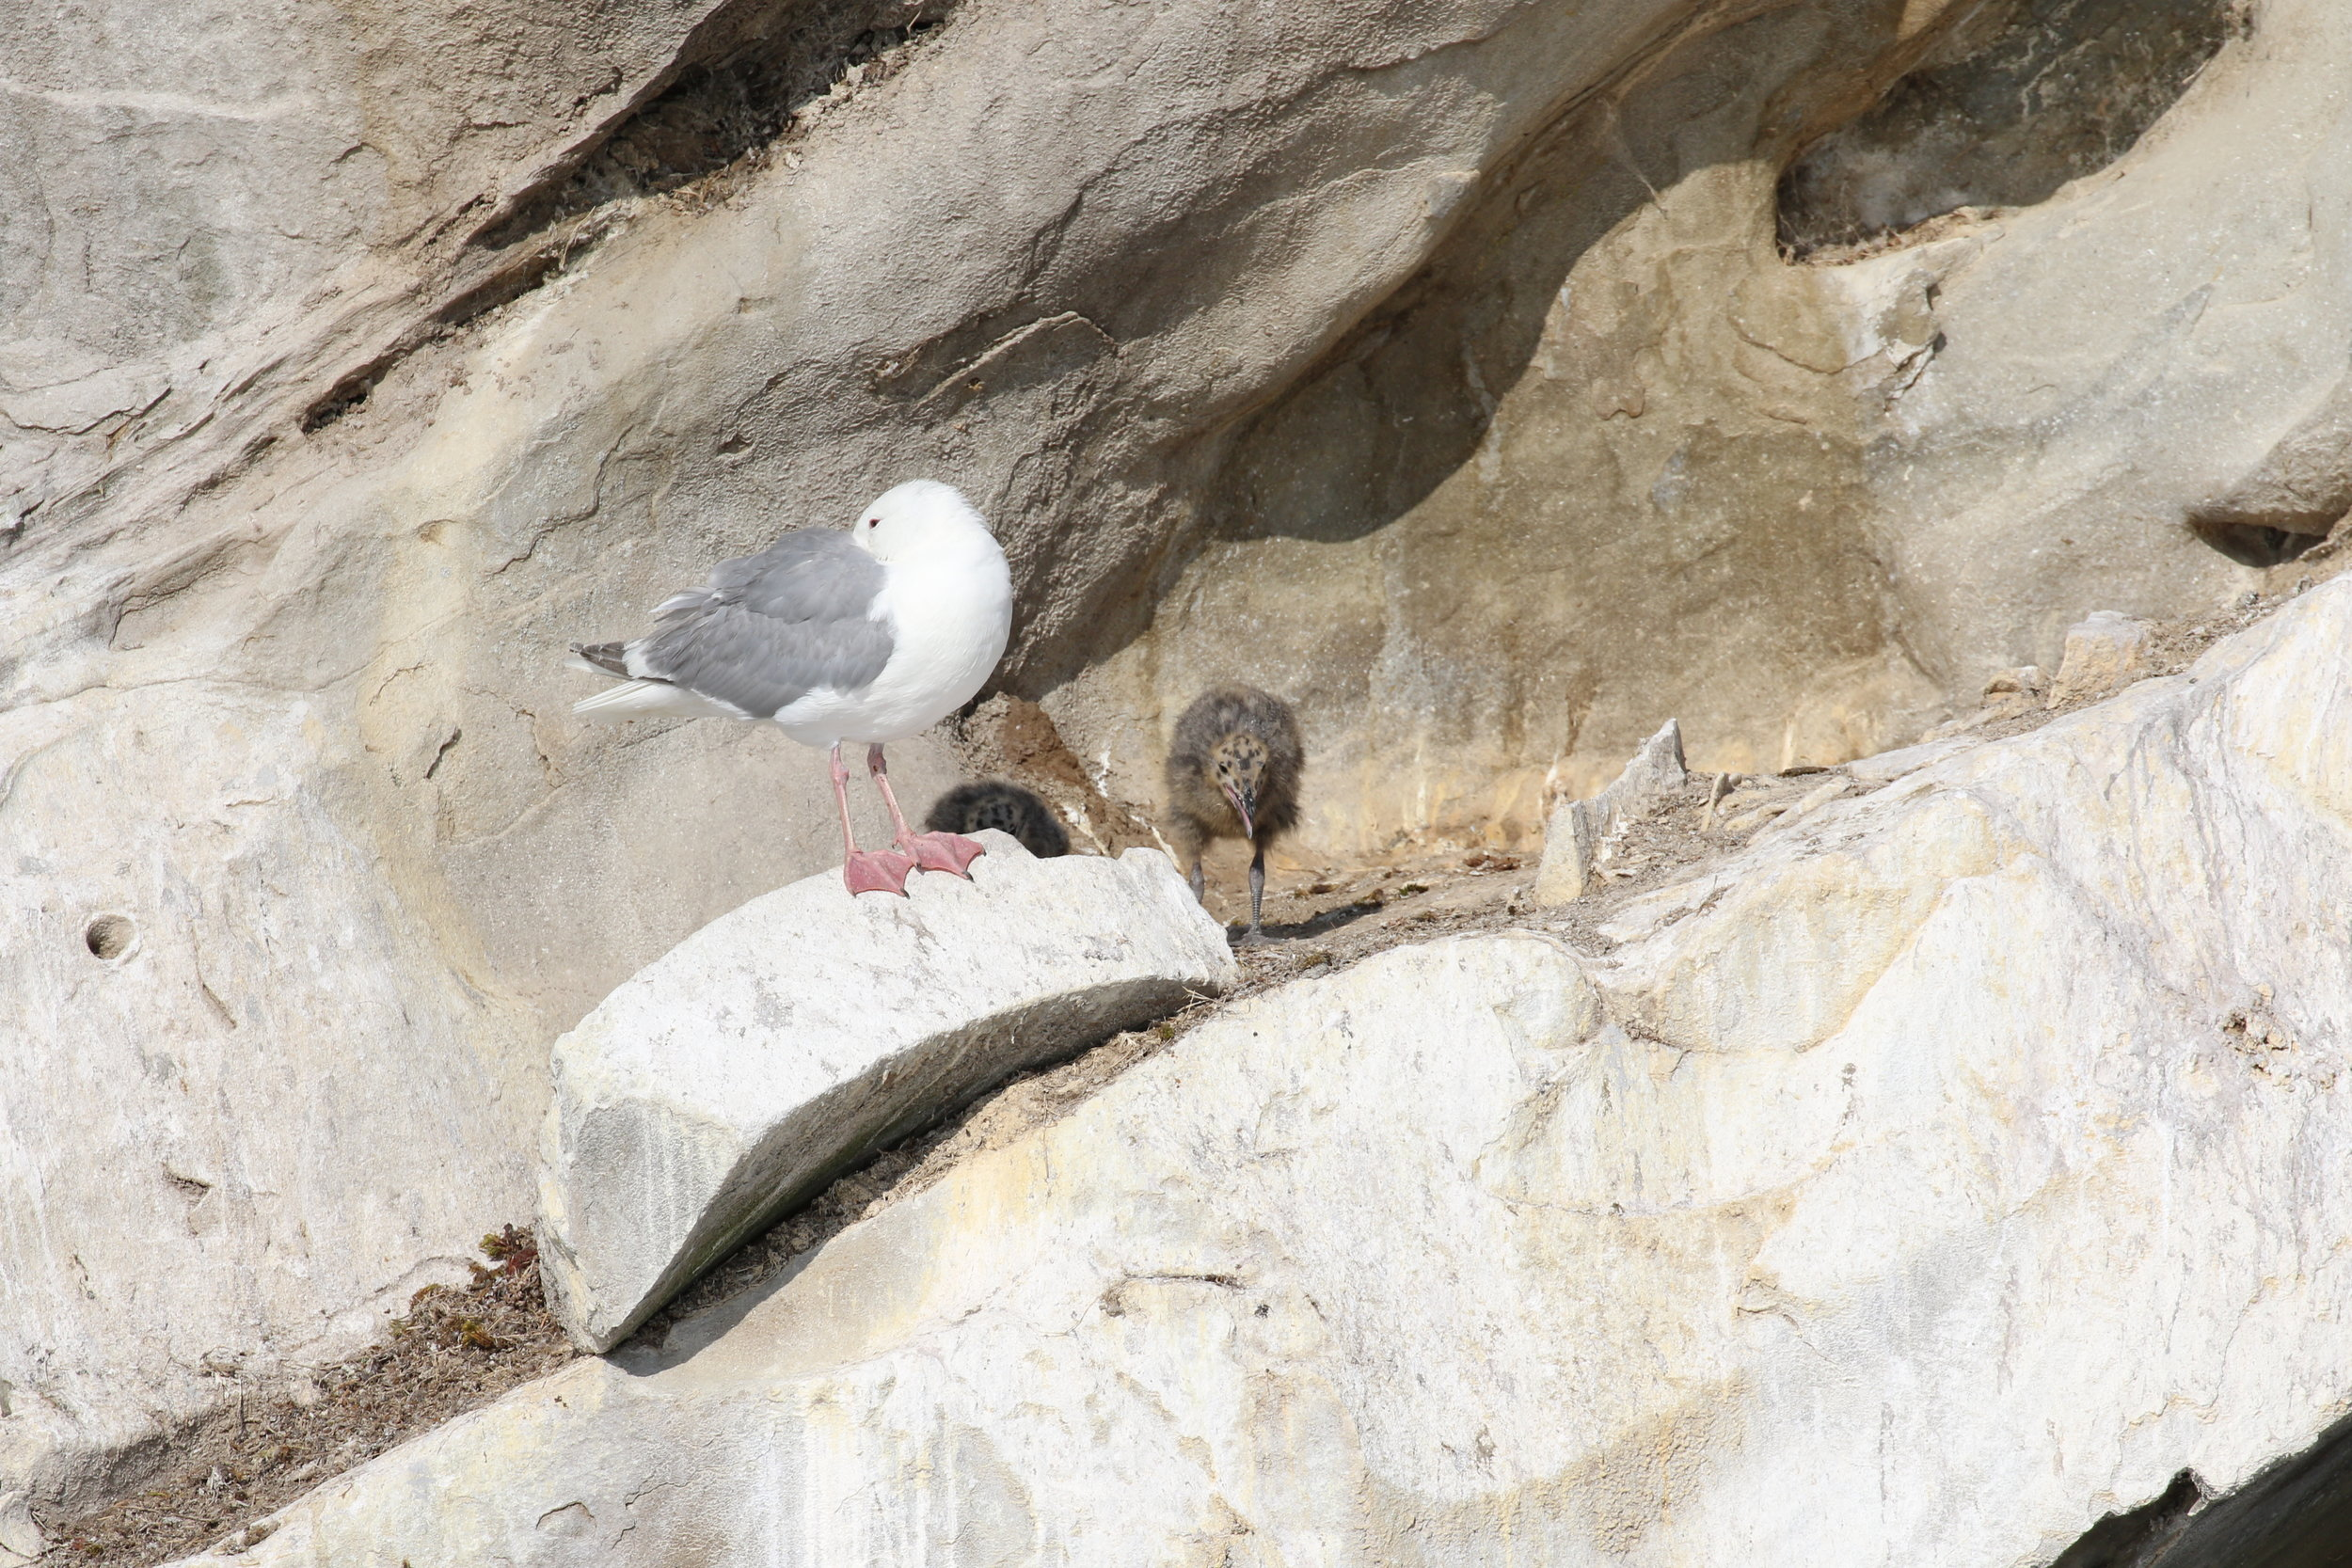 Momma seagull with her two chicks! Photo by Rebeka Pirker (3:30).